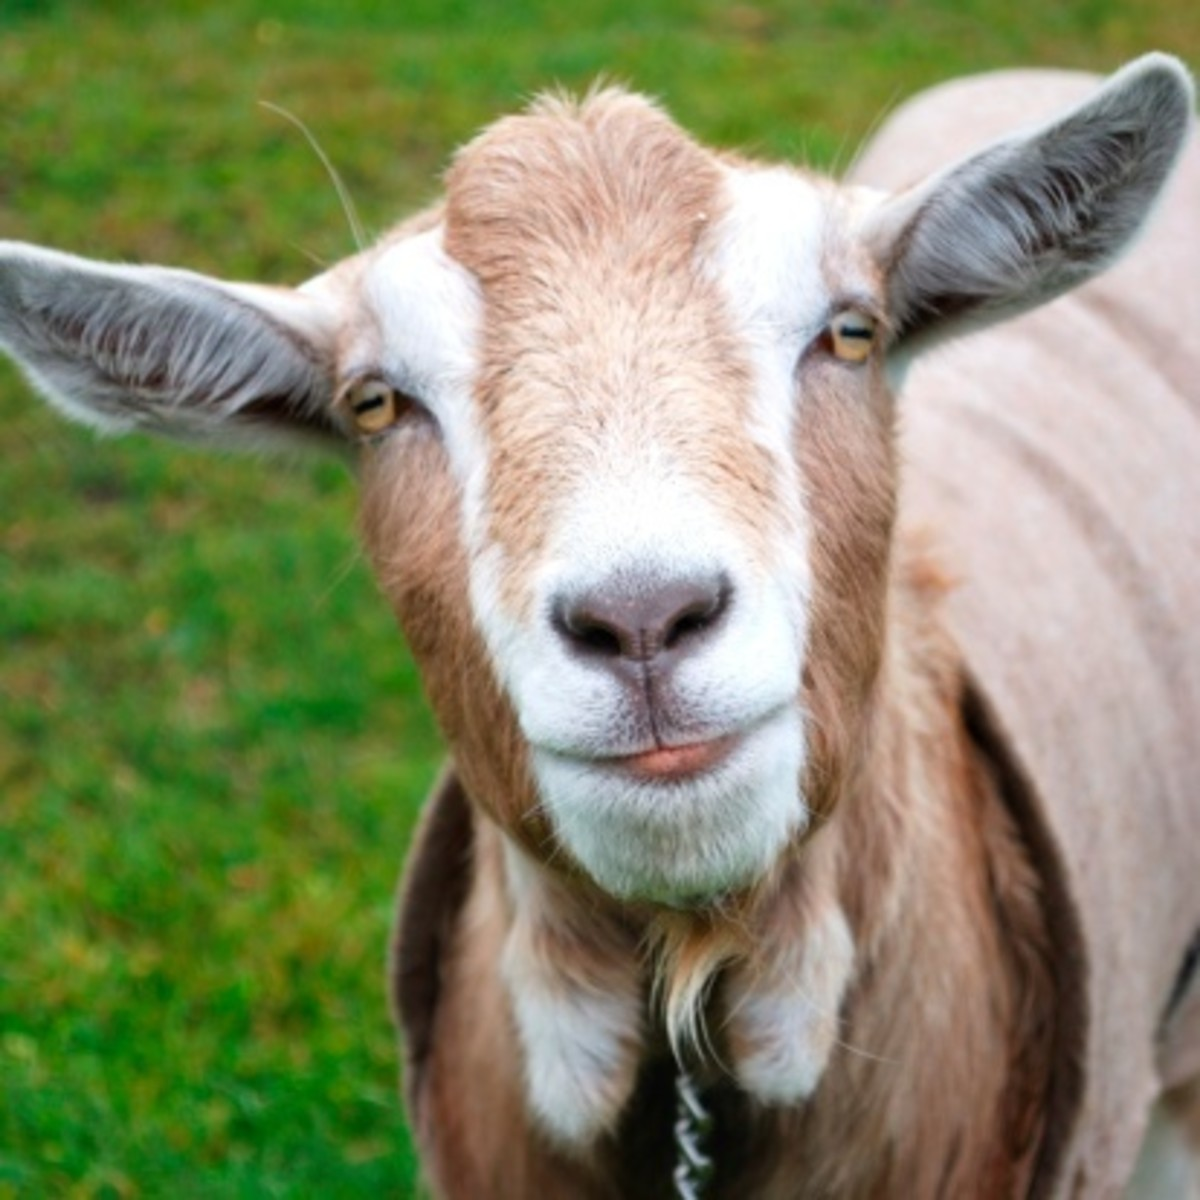 The goat's somewhat off-putting appearance has led some to believe that it courts evil.